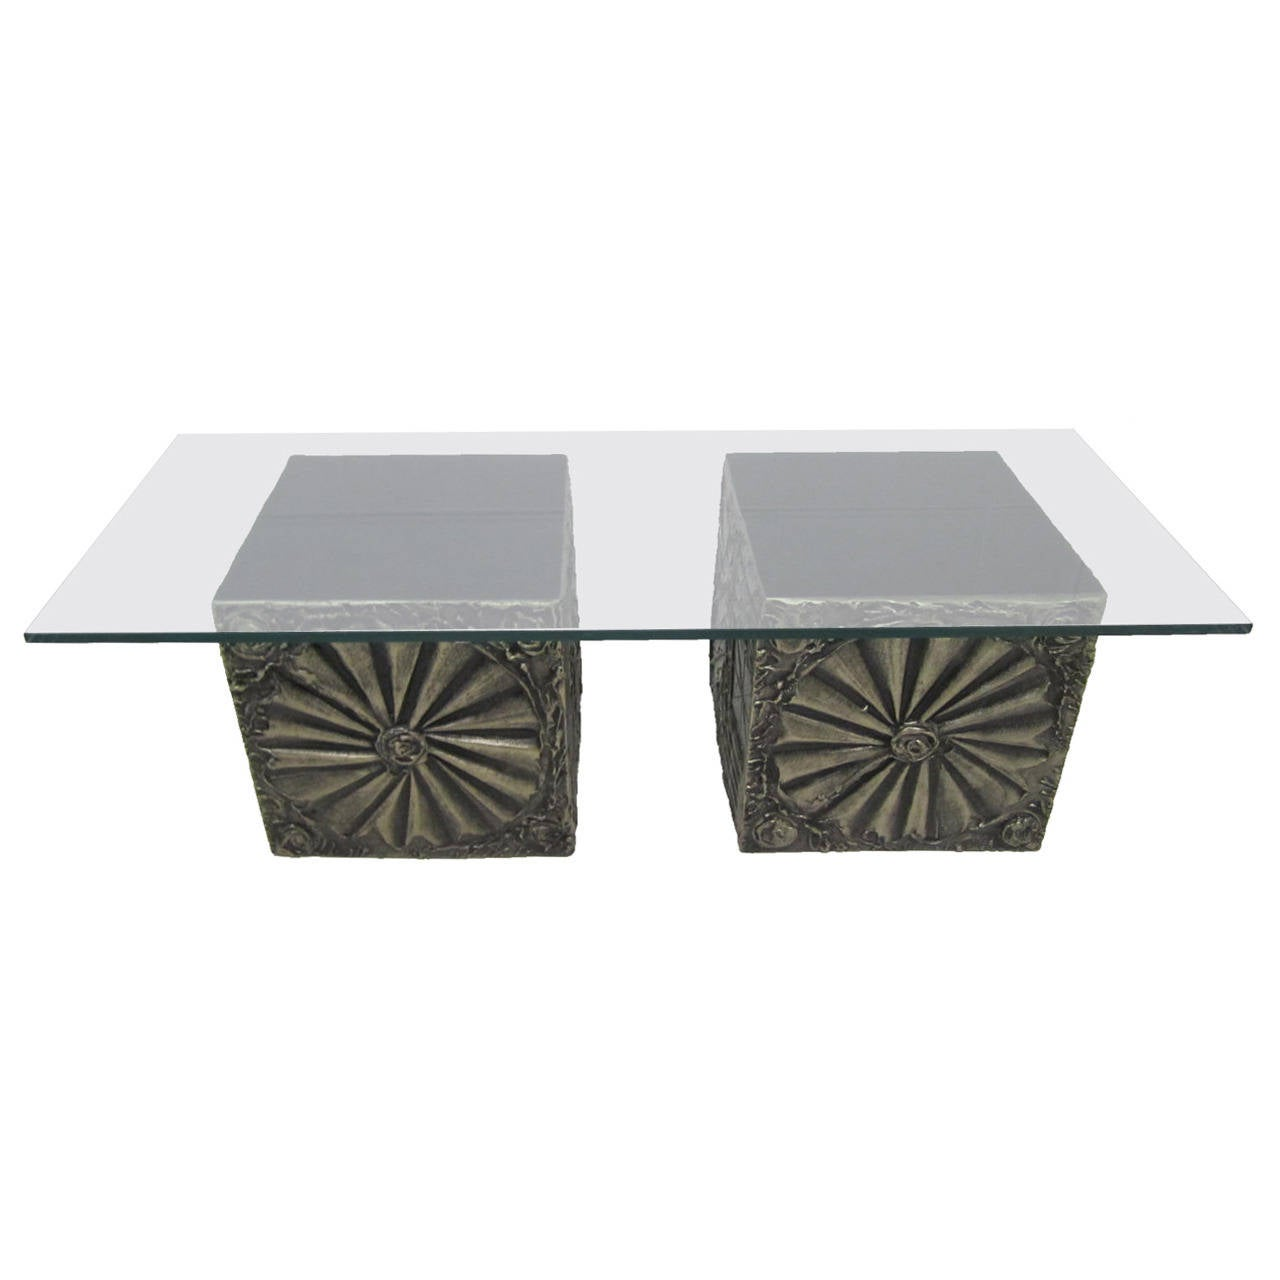 Adrian Pearsall Brutalist, Double Cube, Mid Century Modern Coffee Table 1